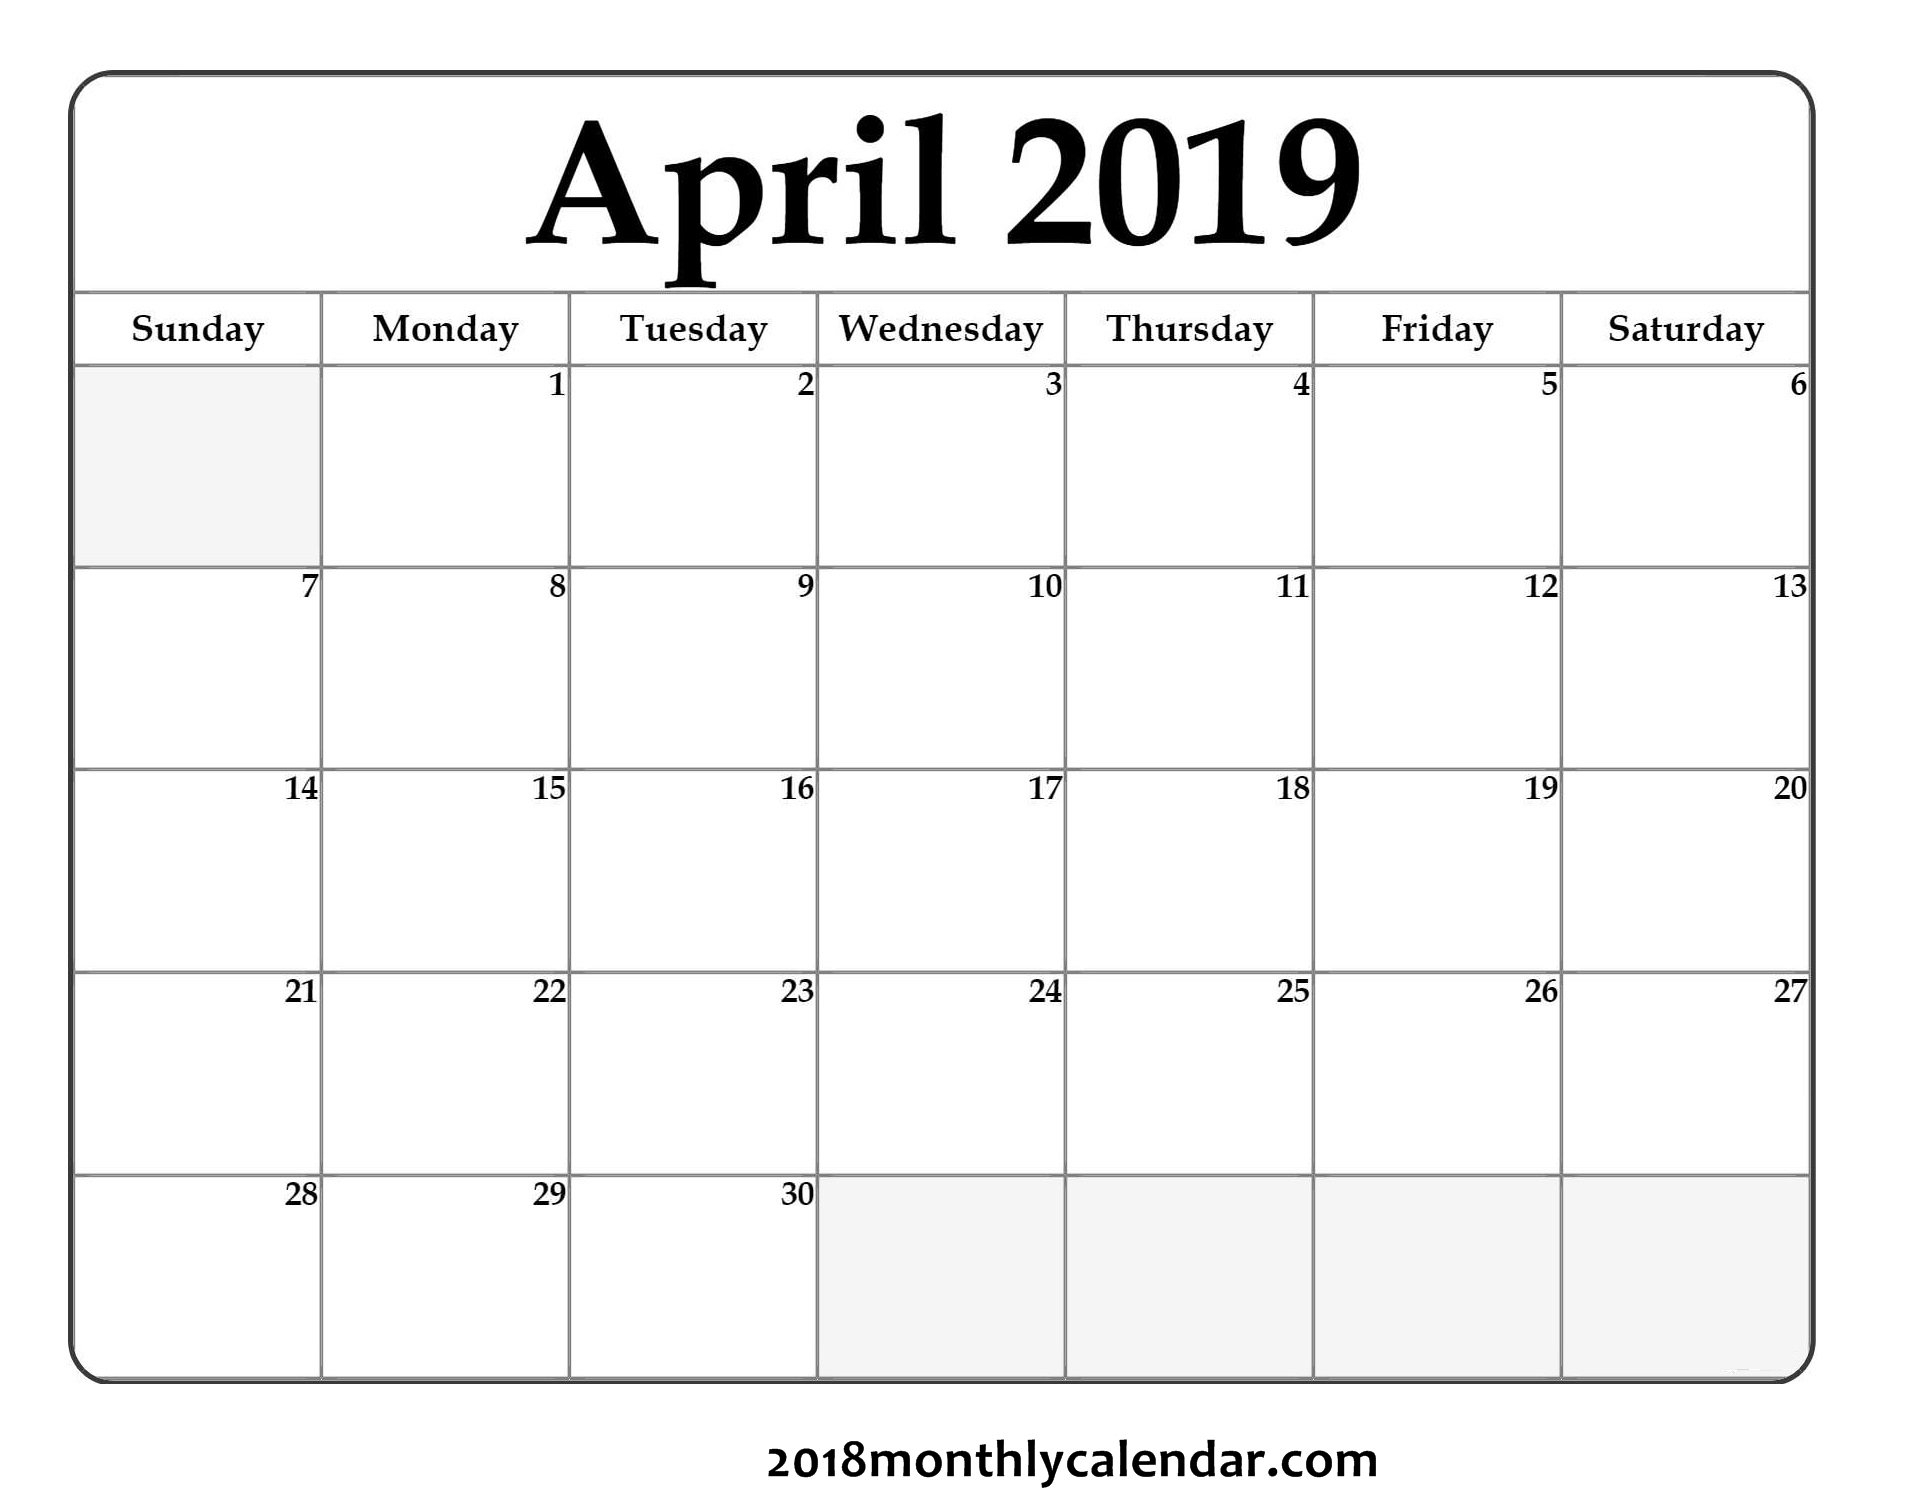 Download April 2019 - Printable Blank & Editable Calendar That I Can Edit